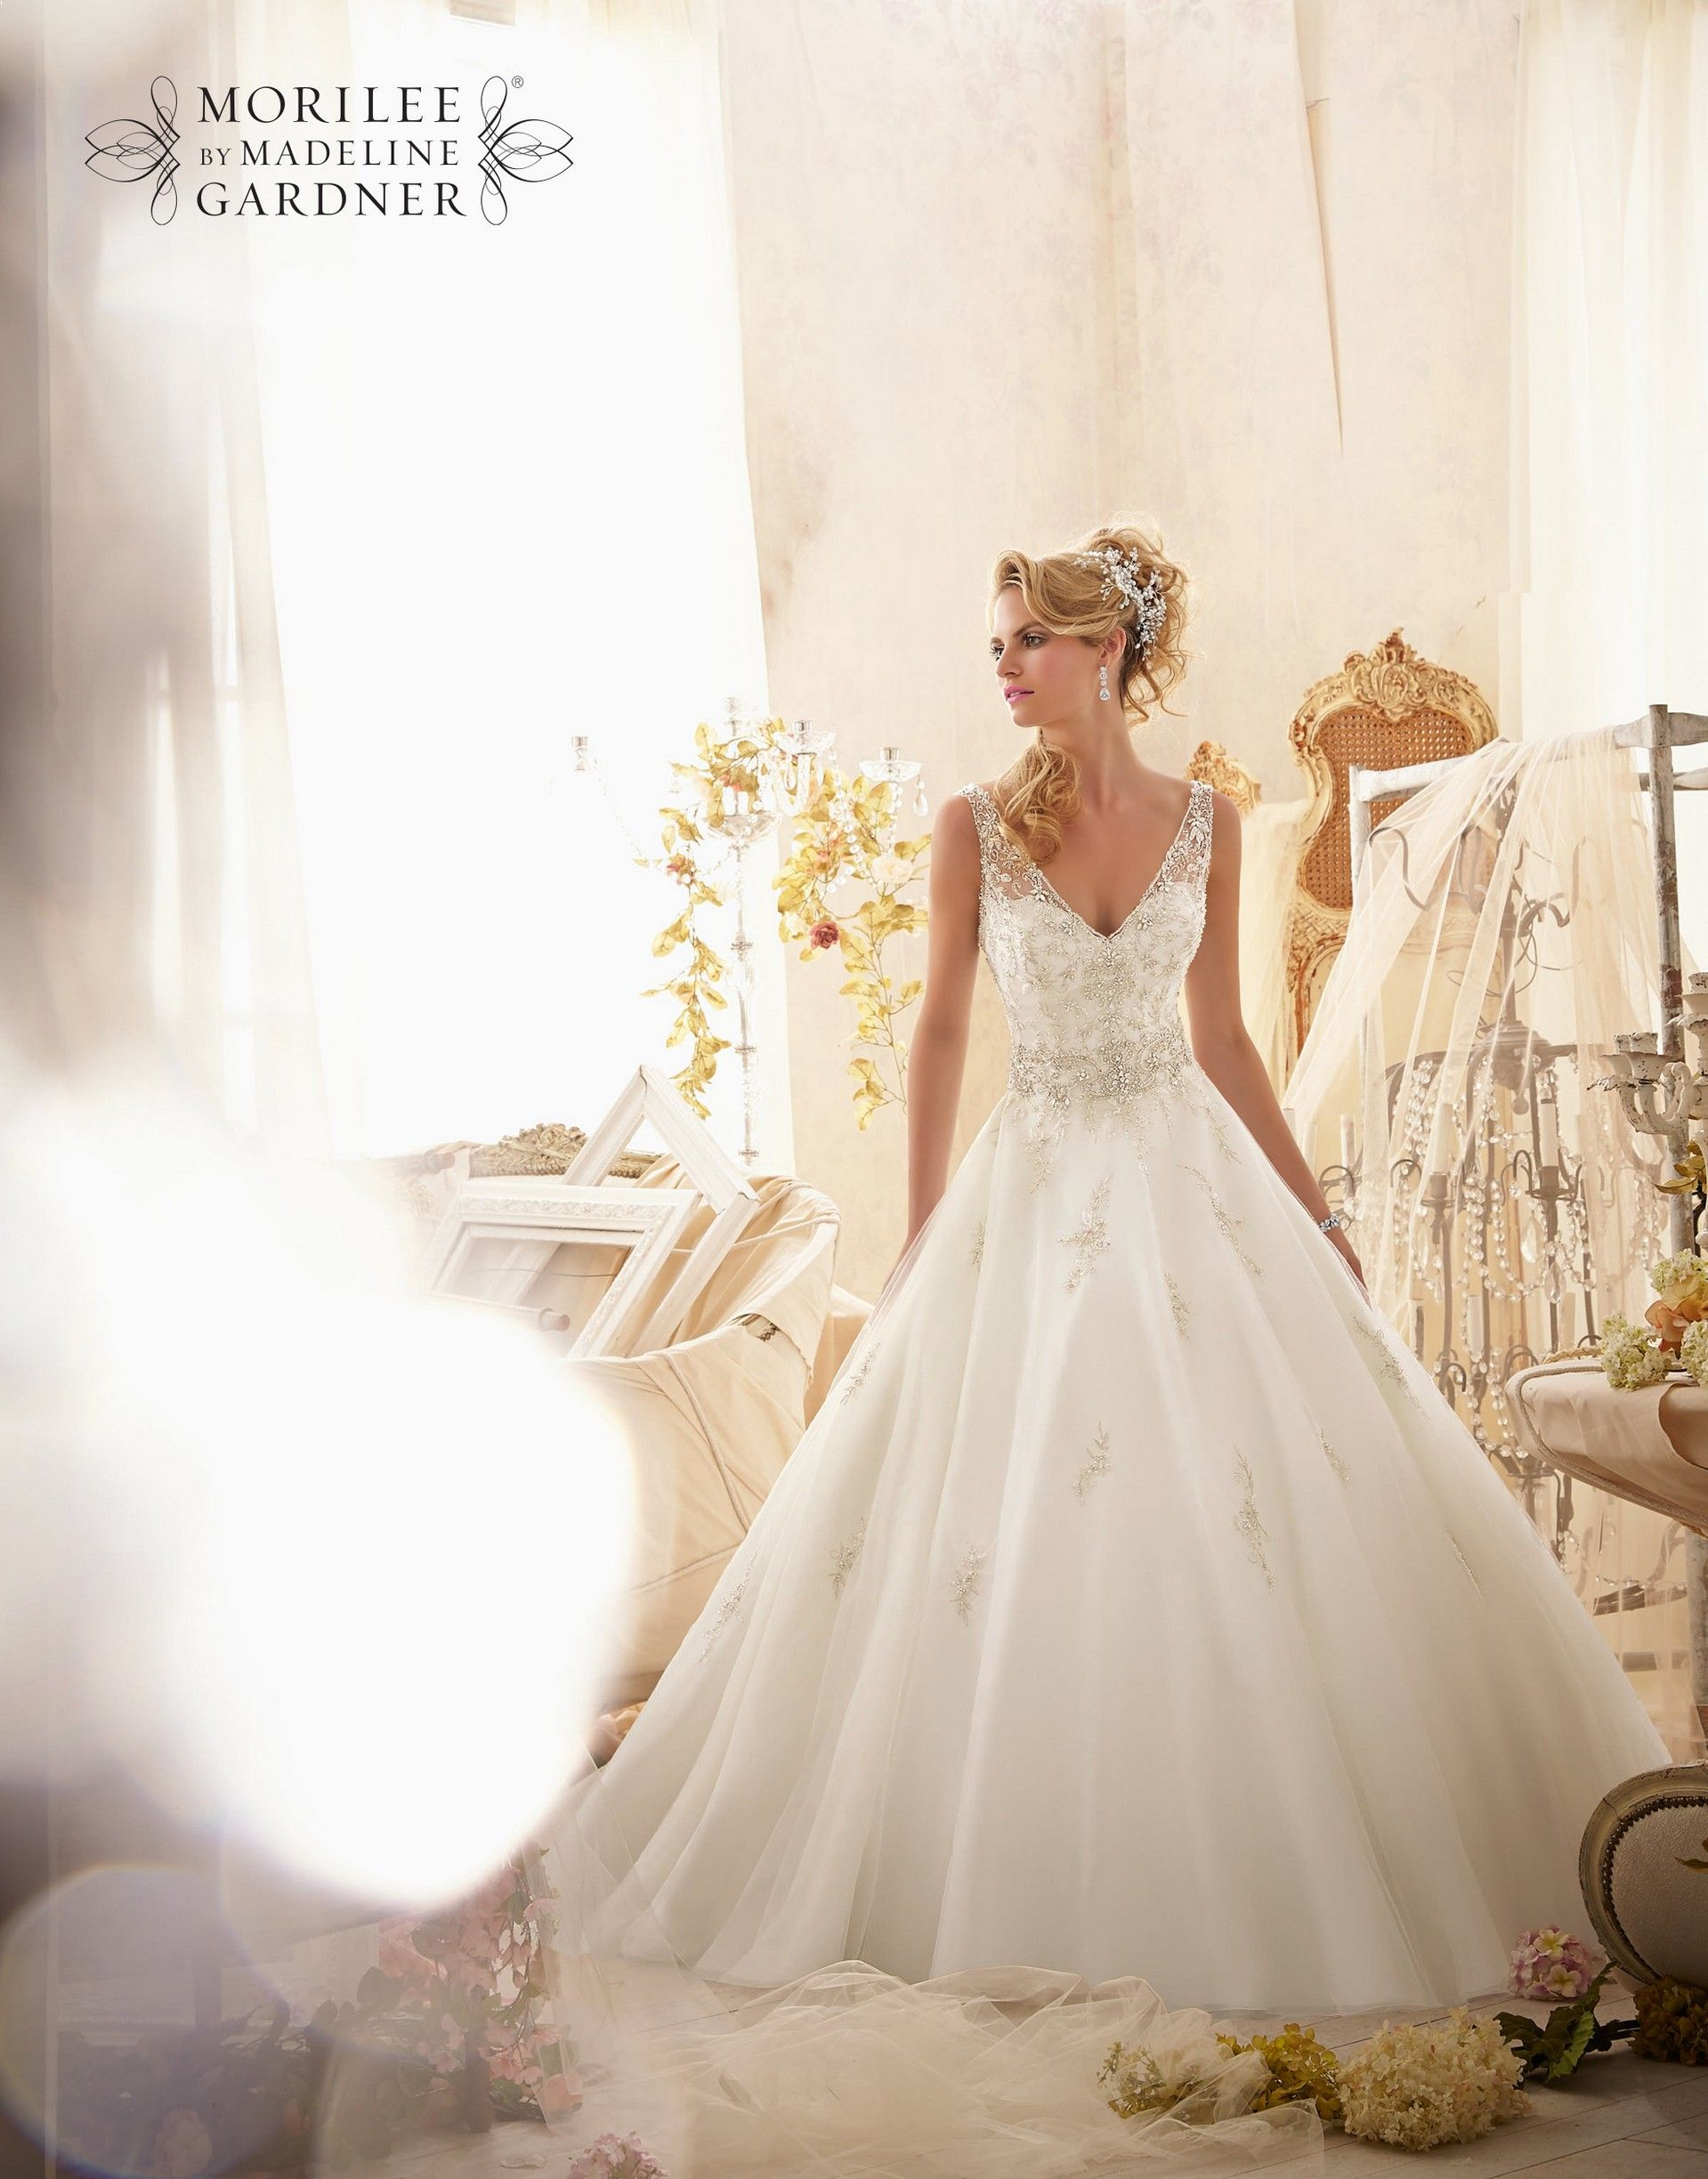 Wedding dresses in london shops  Pin by Rosario Presbitero on vestidos novia  Pinterest  Mori lee